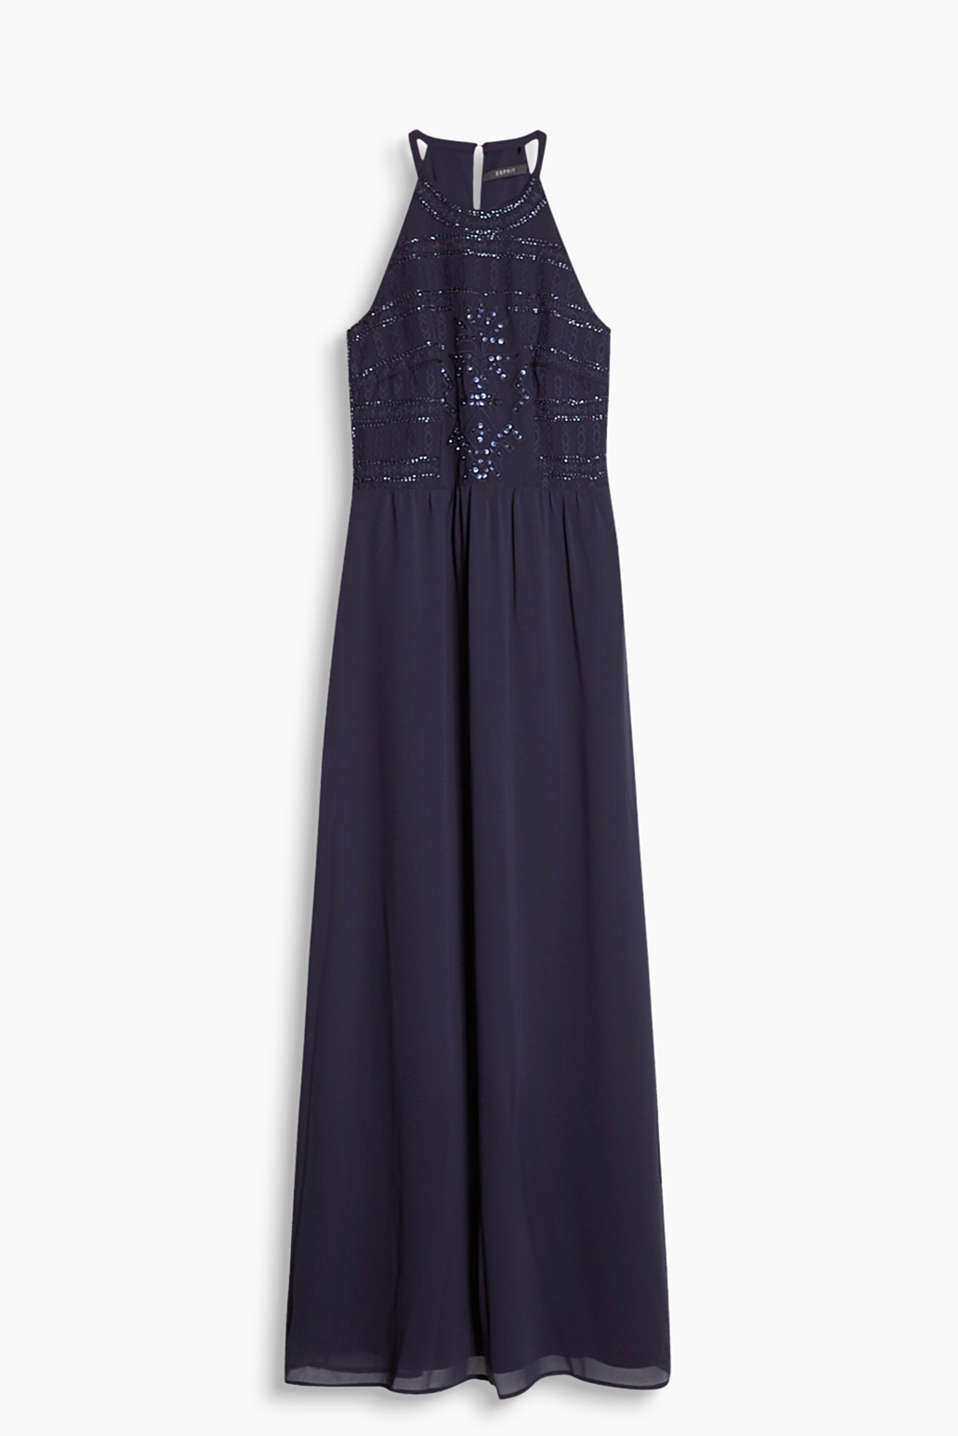 Chiffon maxi dress with an elaborately decorated top section featuring embroidery and sequins